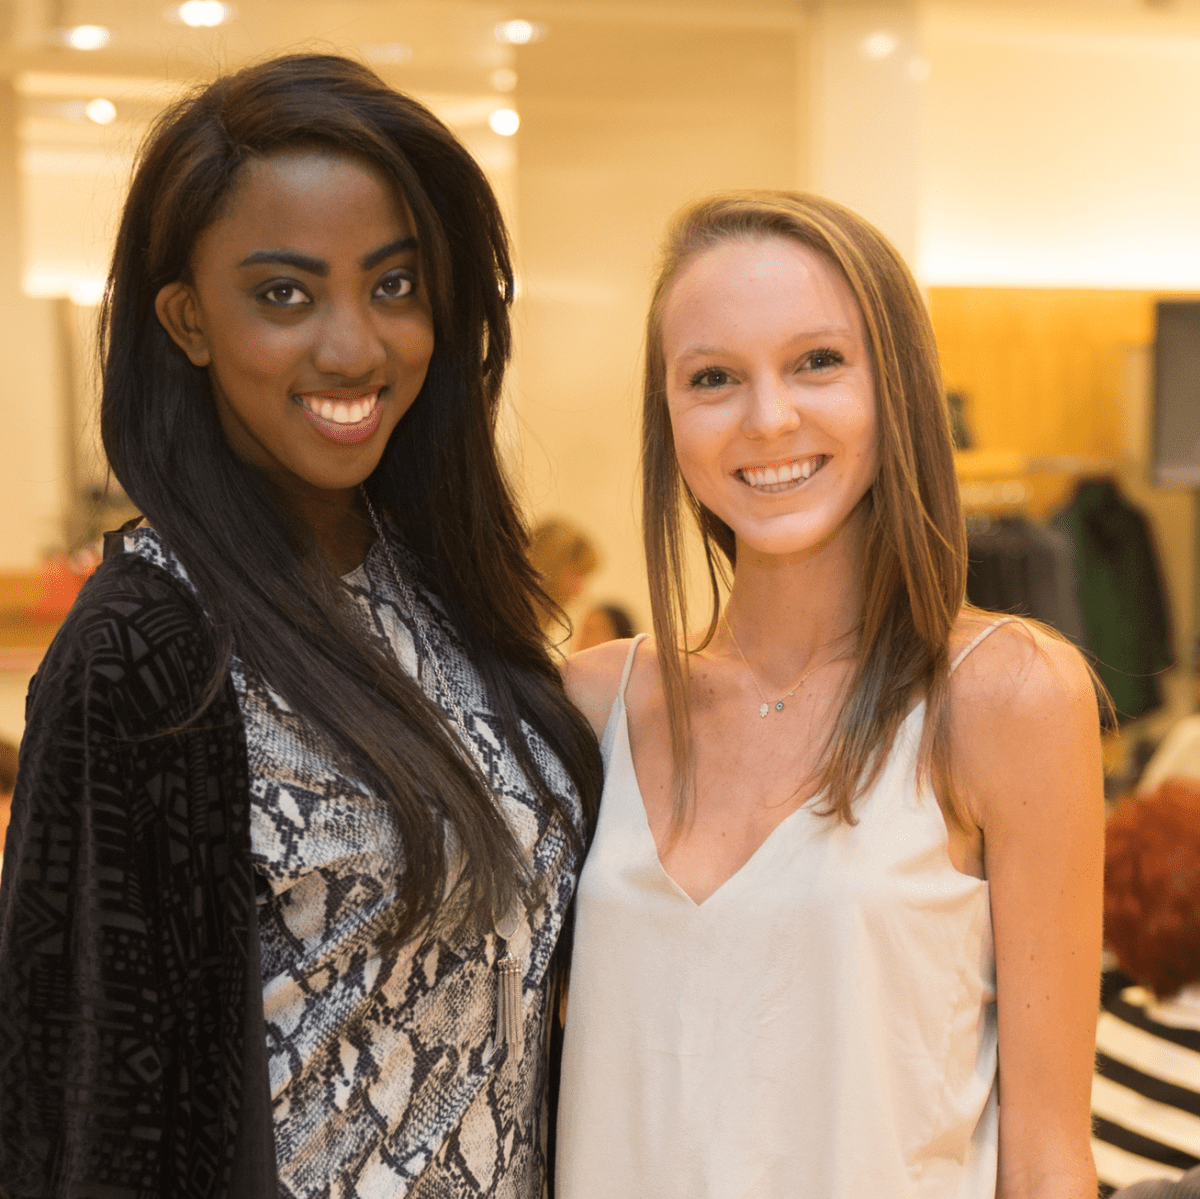 Devon Sells and Alex Odum at Neiman Marcus Trend Event